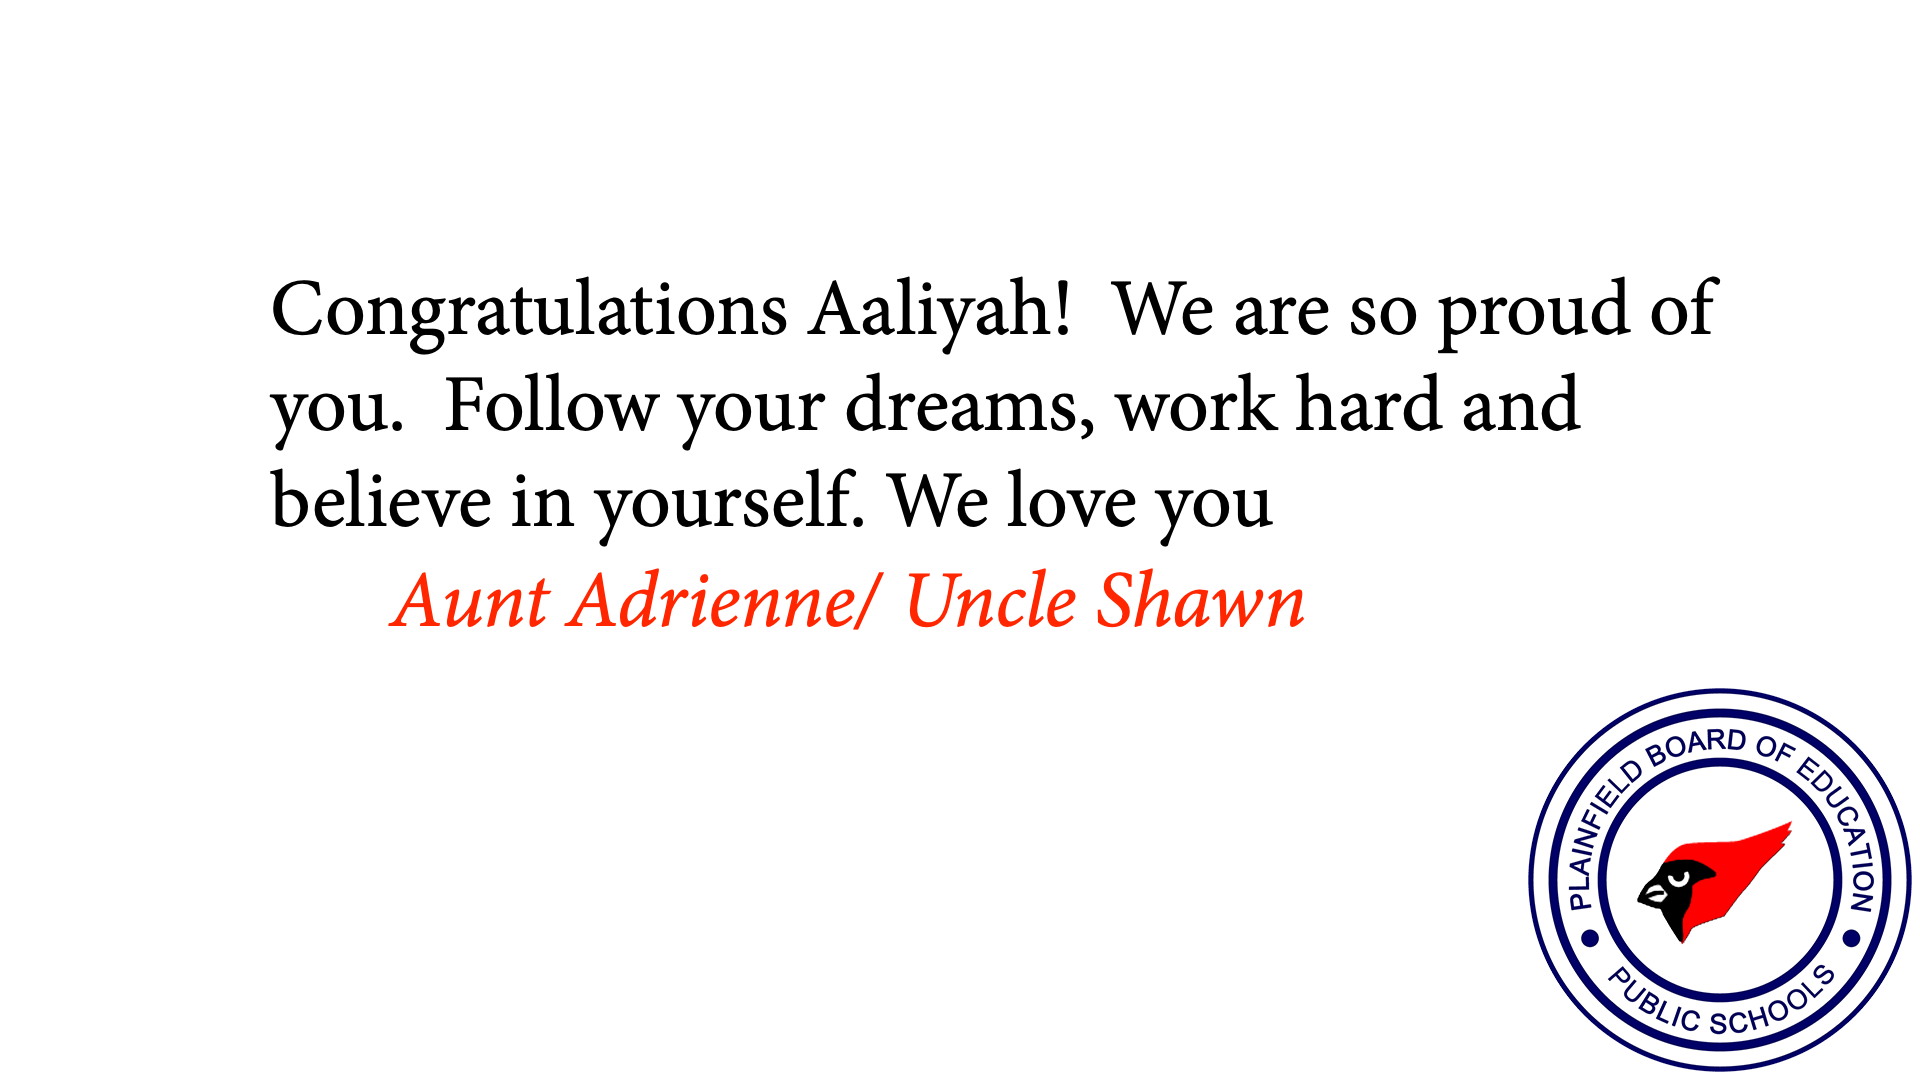 tbi_aaliyah-mone-townsend_342.png